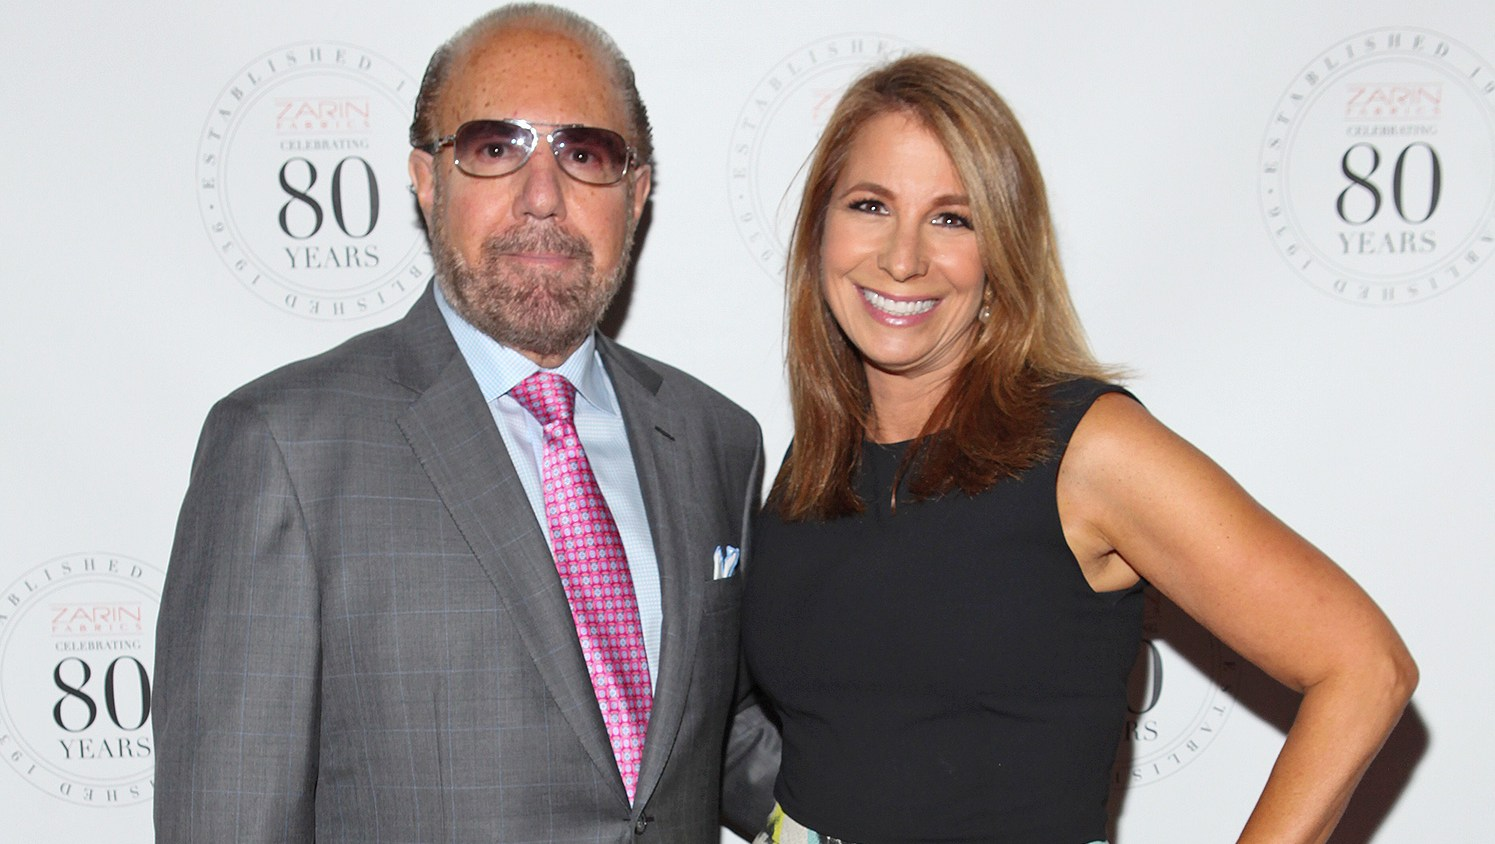 Bobby Zarin, Jill Zarin, Real Housewives of New York, Support